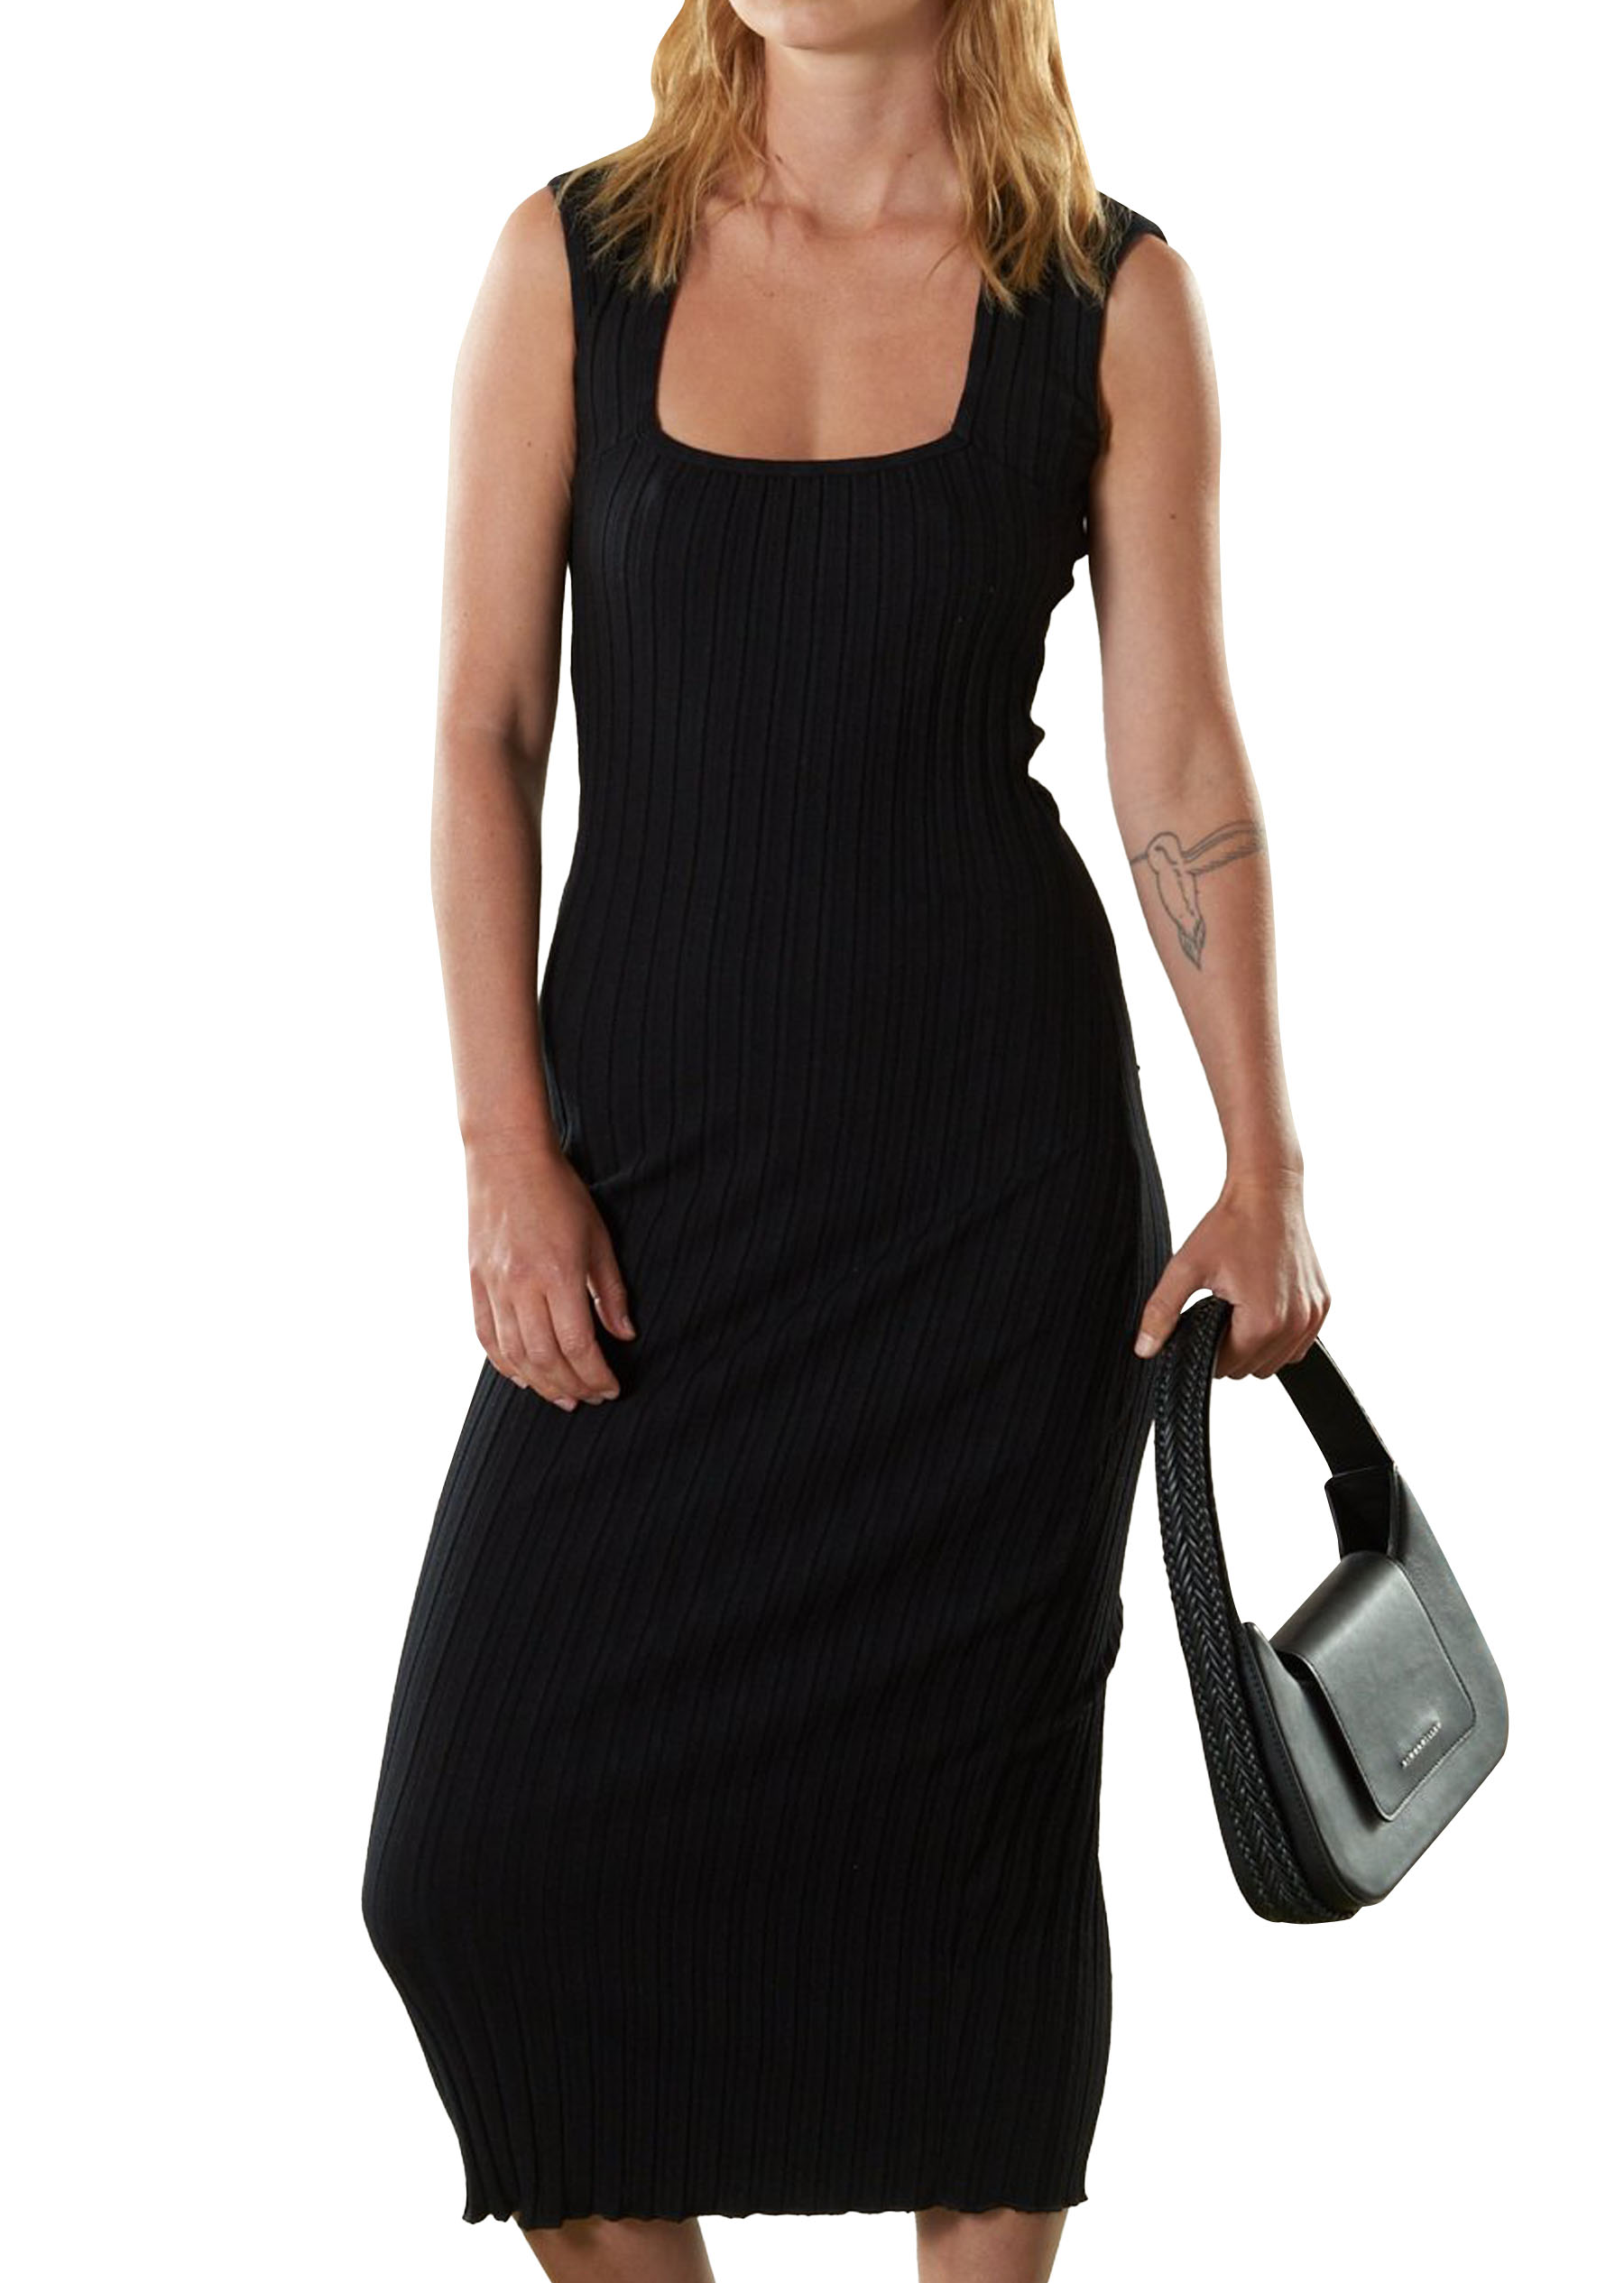 RIB Amos Dress in Black by Simon Miller - 1